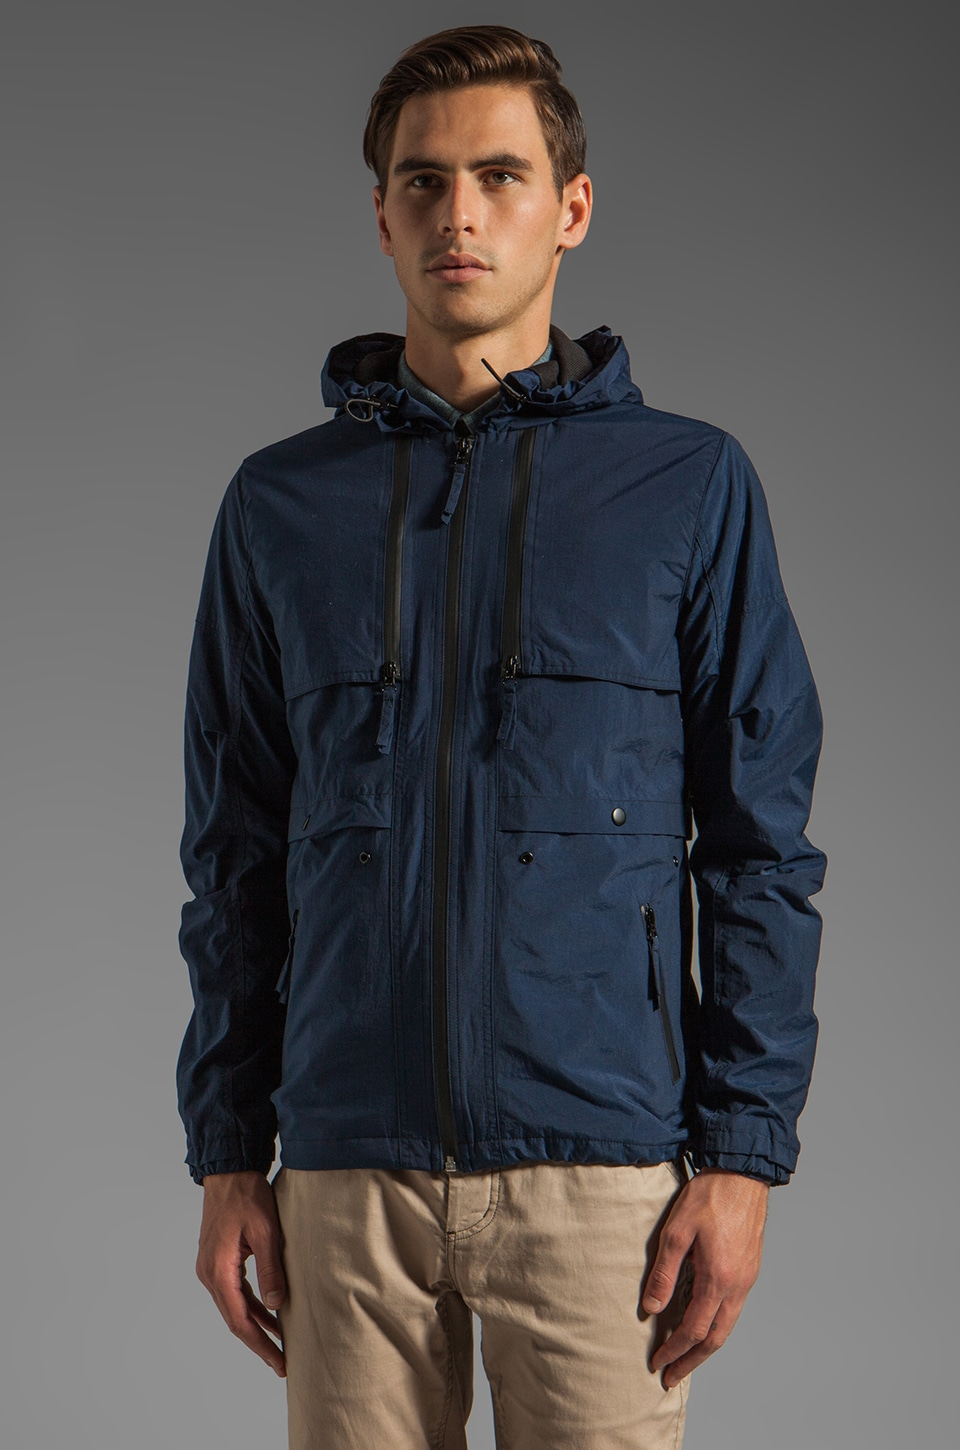 TOVAR Paterson Jacket in Navy